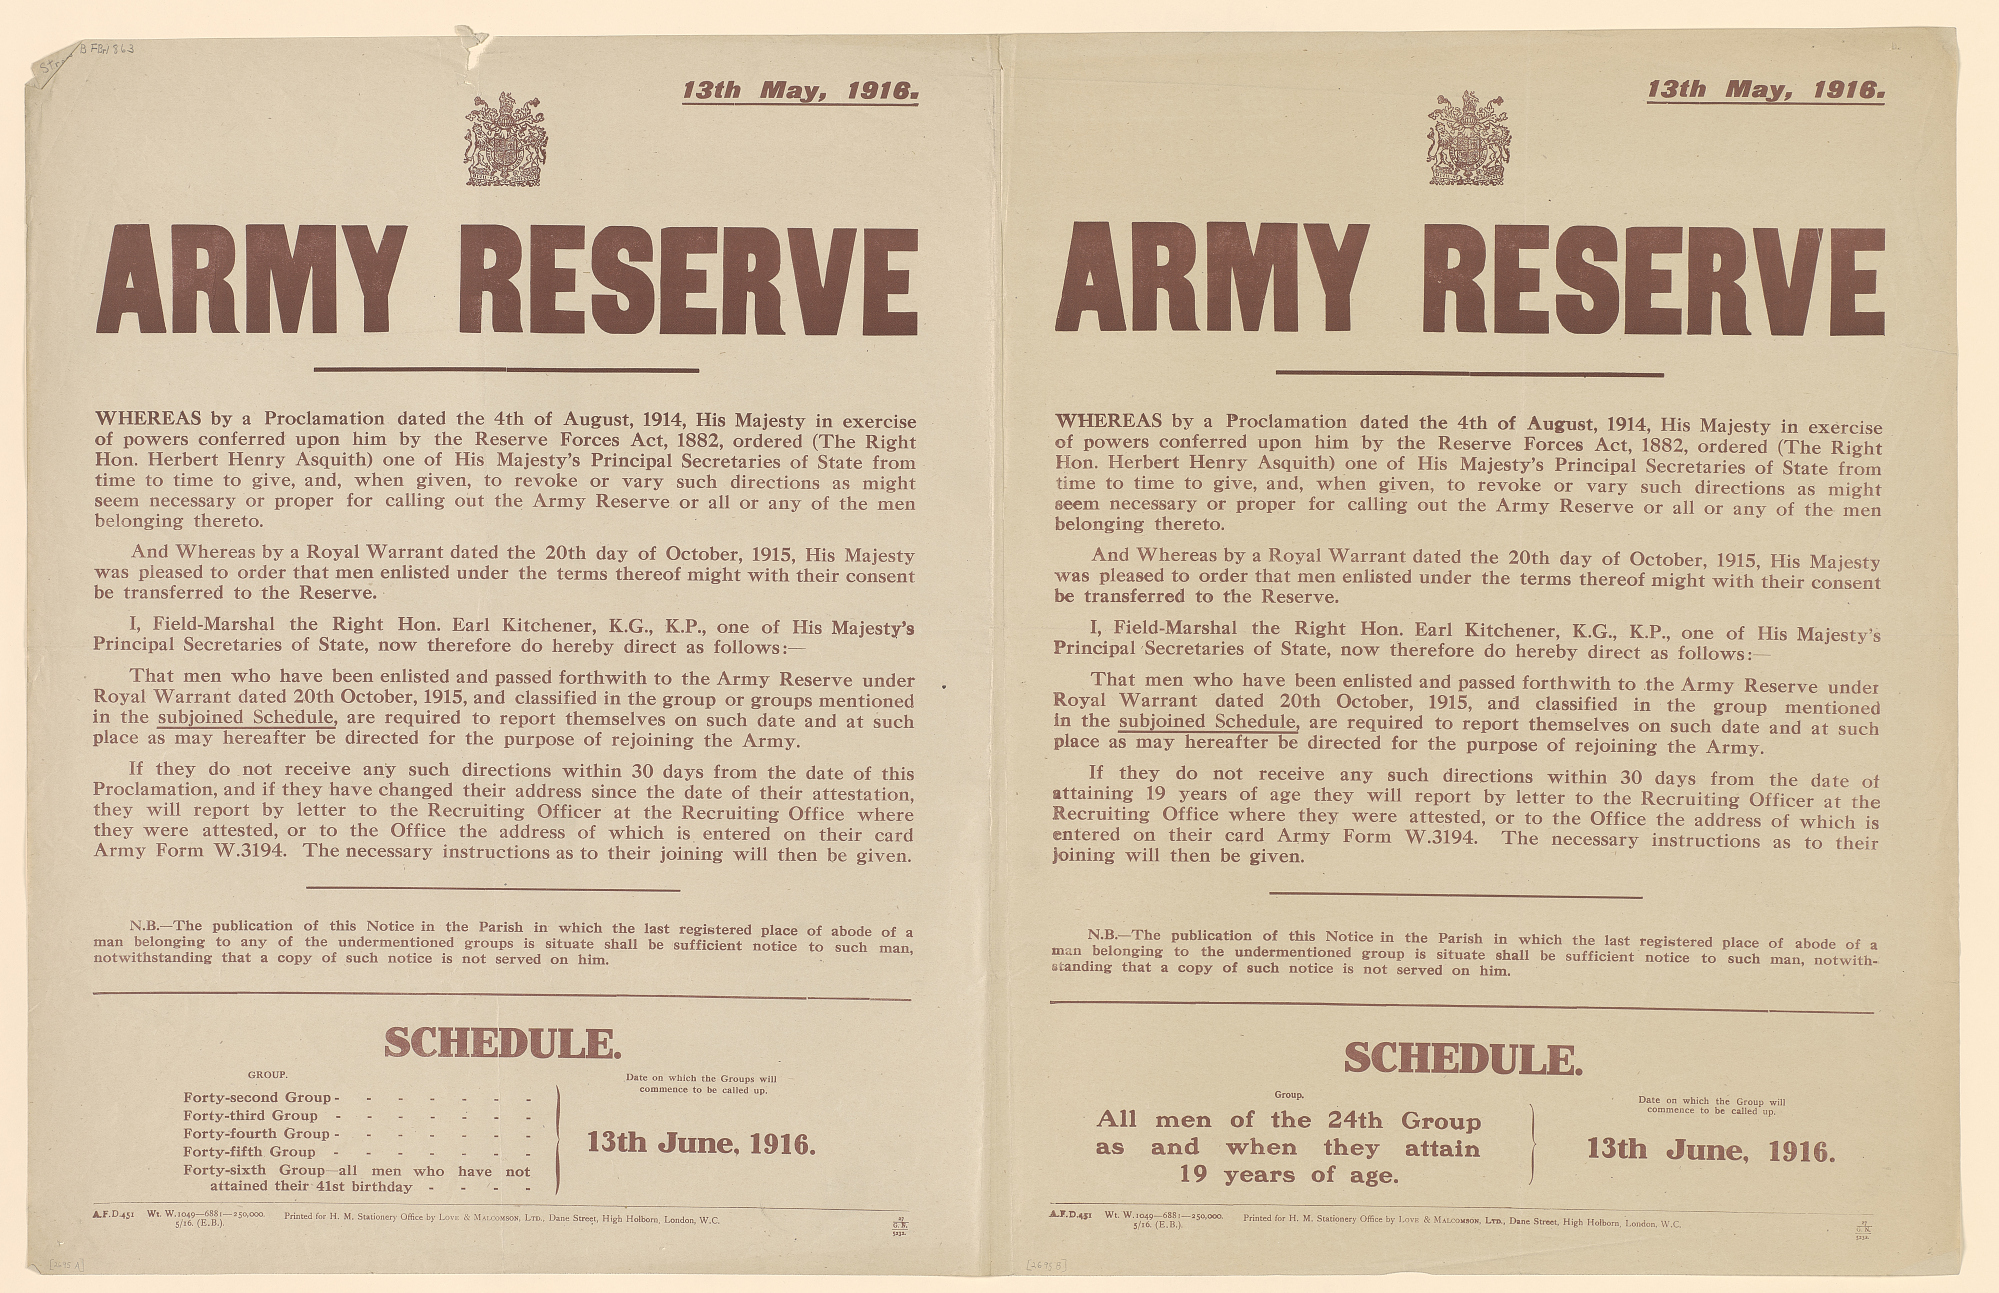 Army Reserve ... Required to Report Themselves on Such Date and at Such Place as May Hereafter Be Directed ... A: Schedule Forty-Second Group, Forty-Third Group ... B: Schedule All Men of the 24th Group as and When They Attain 19 Years of Age...